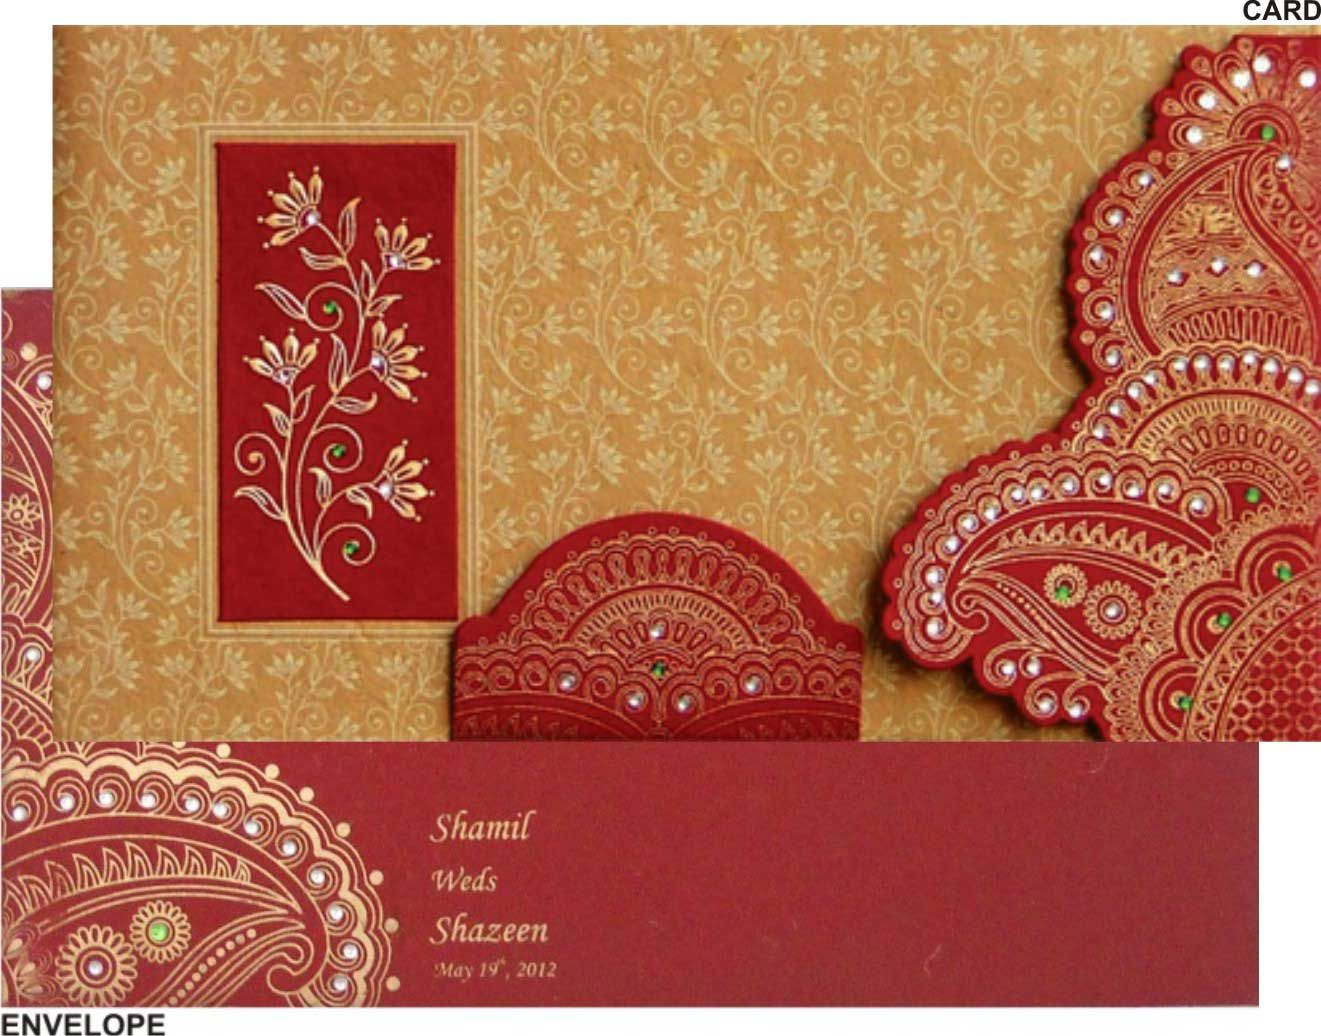 Wedding Wedding Cards wedding card in elegant gift style with red golden satin royal indian cards 02 weddings weddingdresses